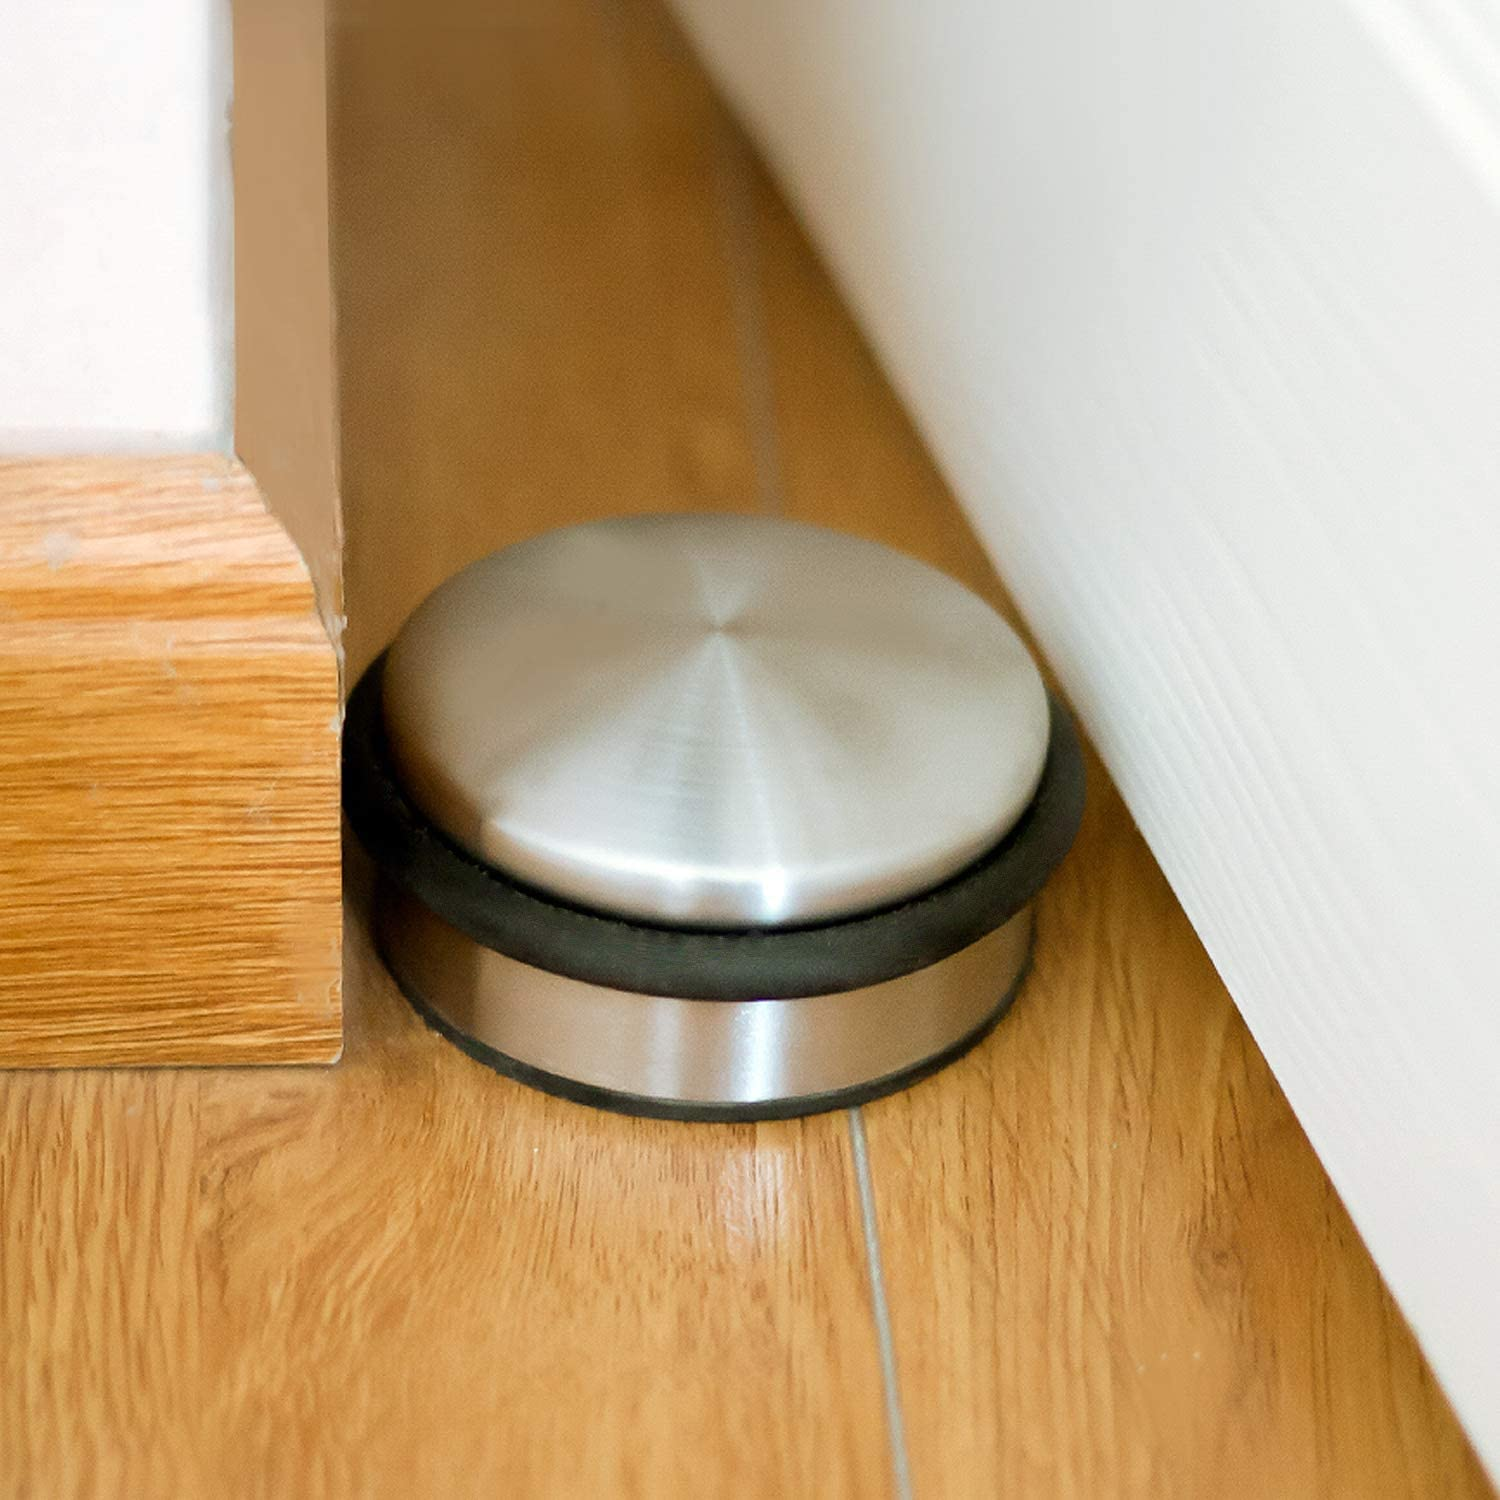 YX-ZD Rubber Door Stop,Works on All Floor Surfaces Hardwood or Tile Control The Size of The Door Gaps and Great for Carpet 2 Pack